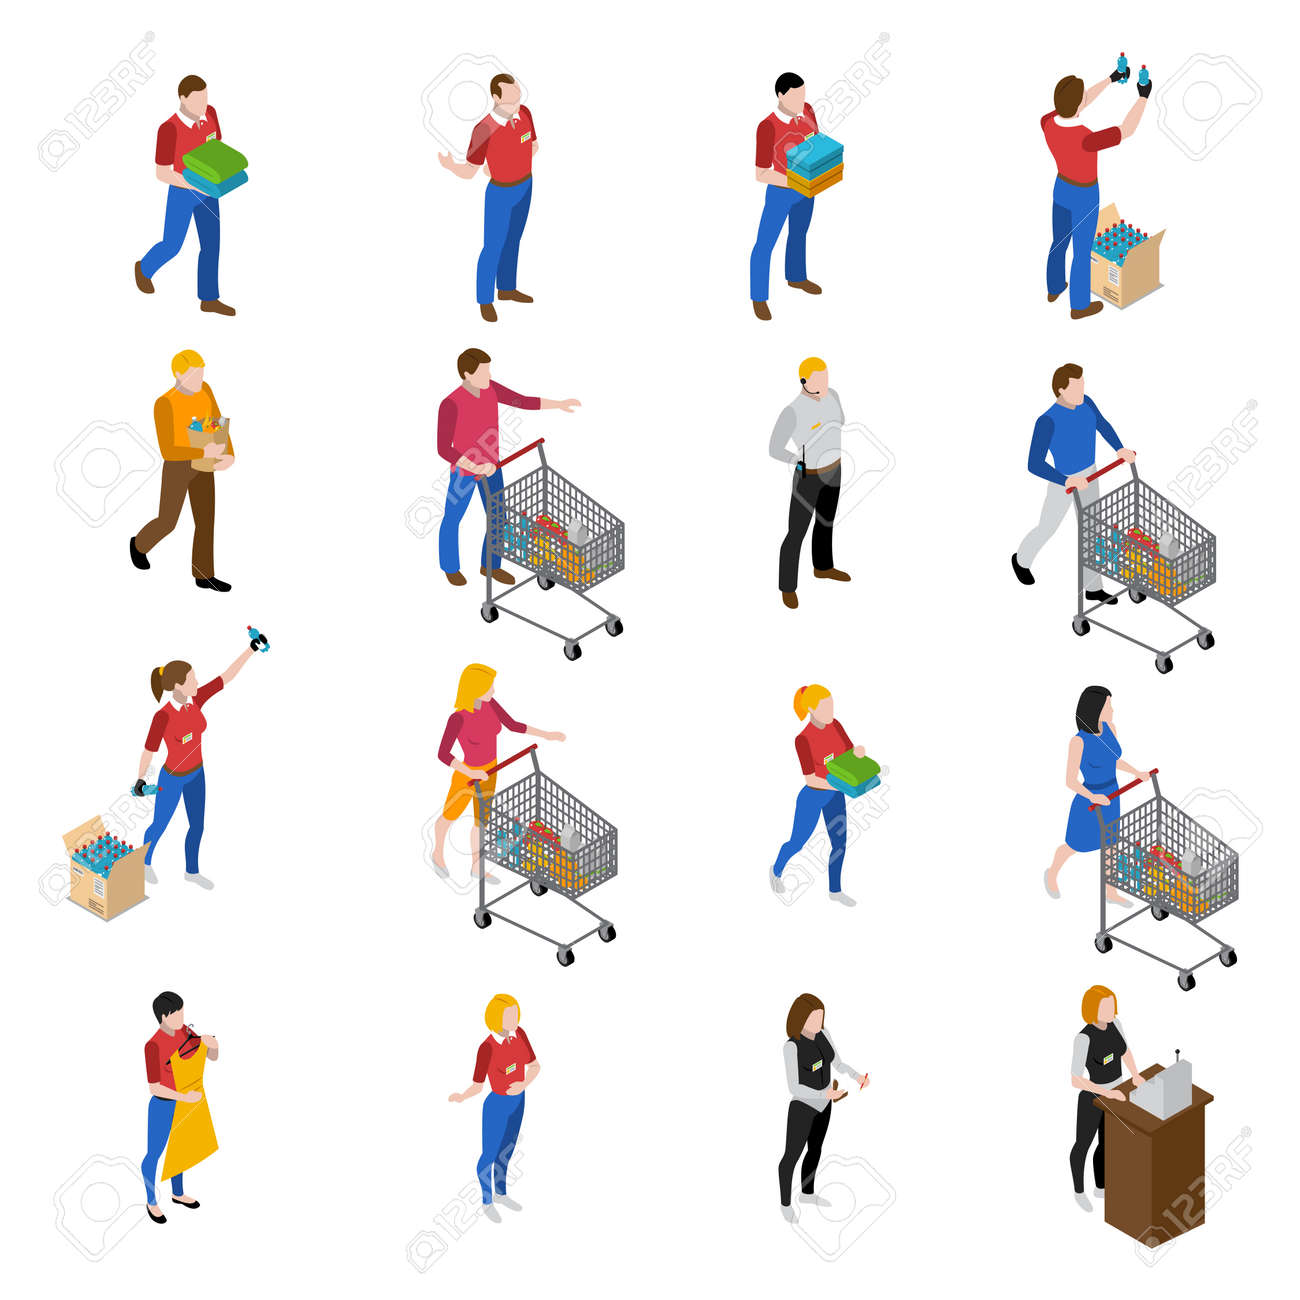 Supermarket isometric icons set with people and food isolated vector illustration - 165571479